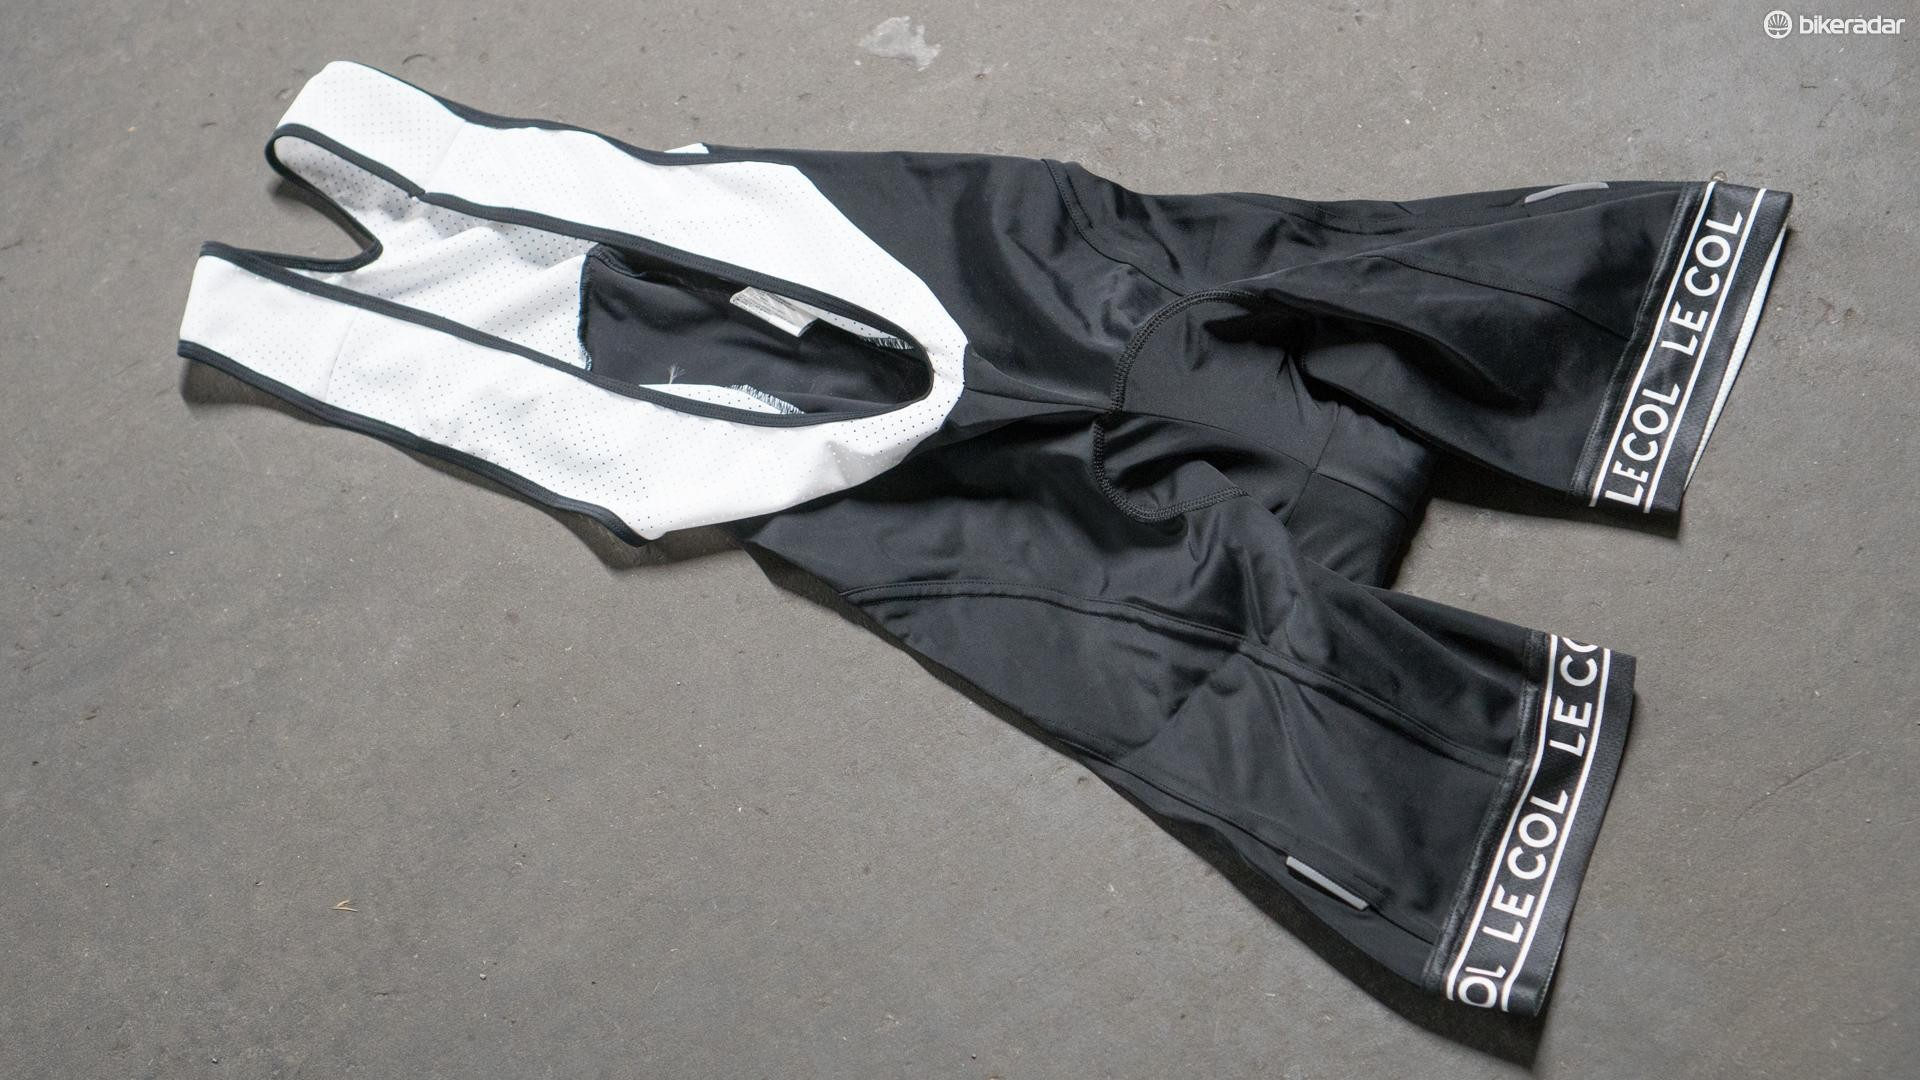 Le Col claims these Pro bib shorts are its fastest yet in terms of performance offerings